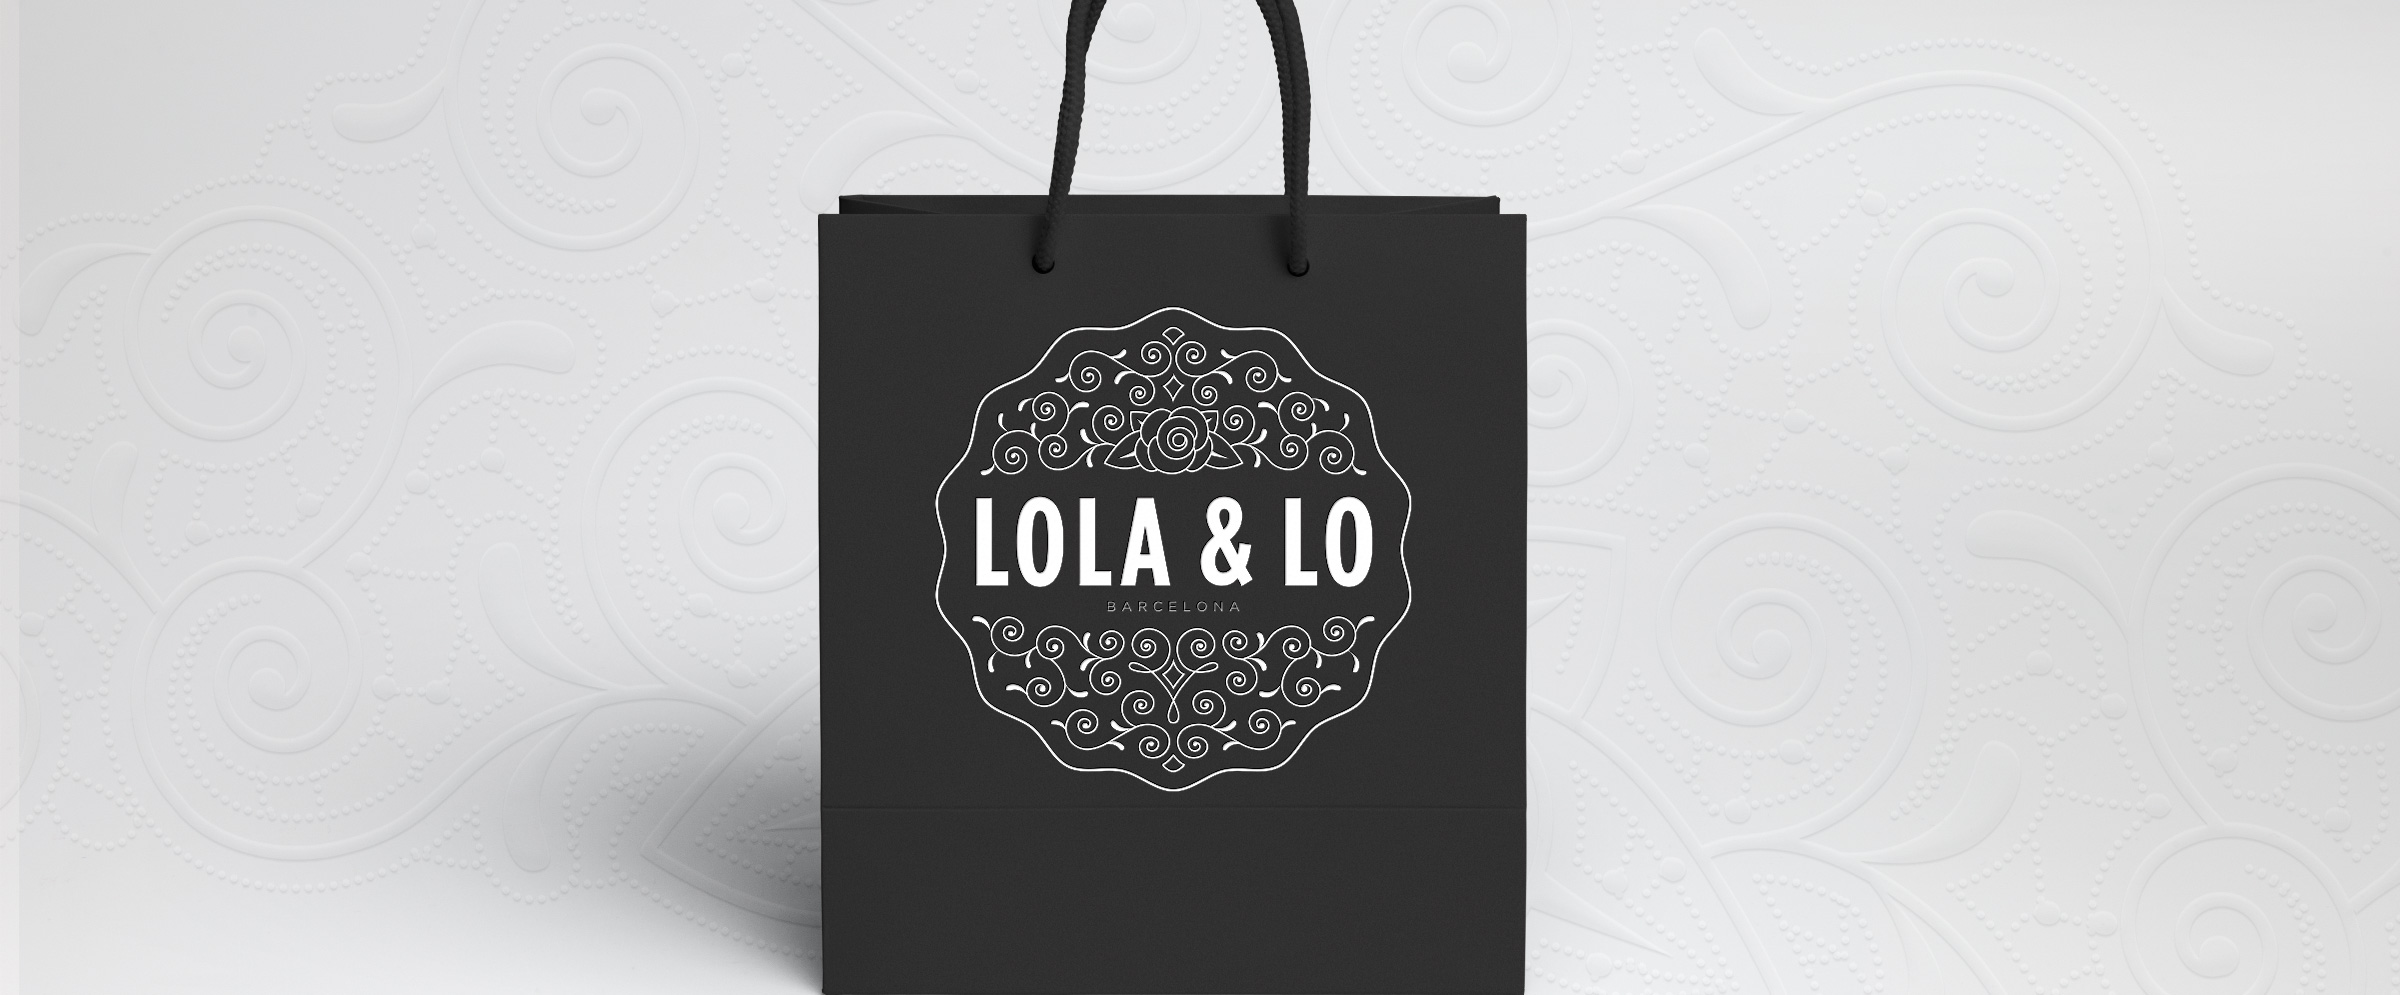 Shopping Bag lolaylo - LOLA & LO